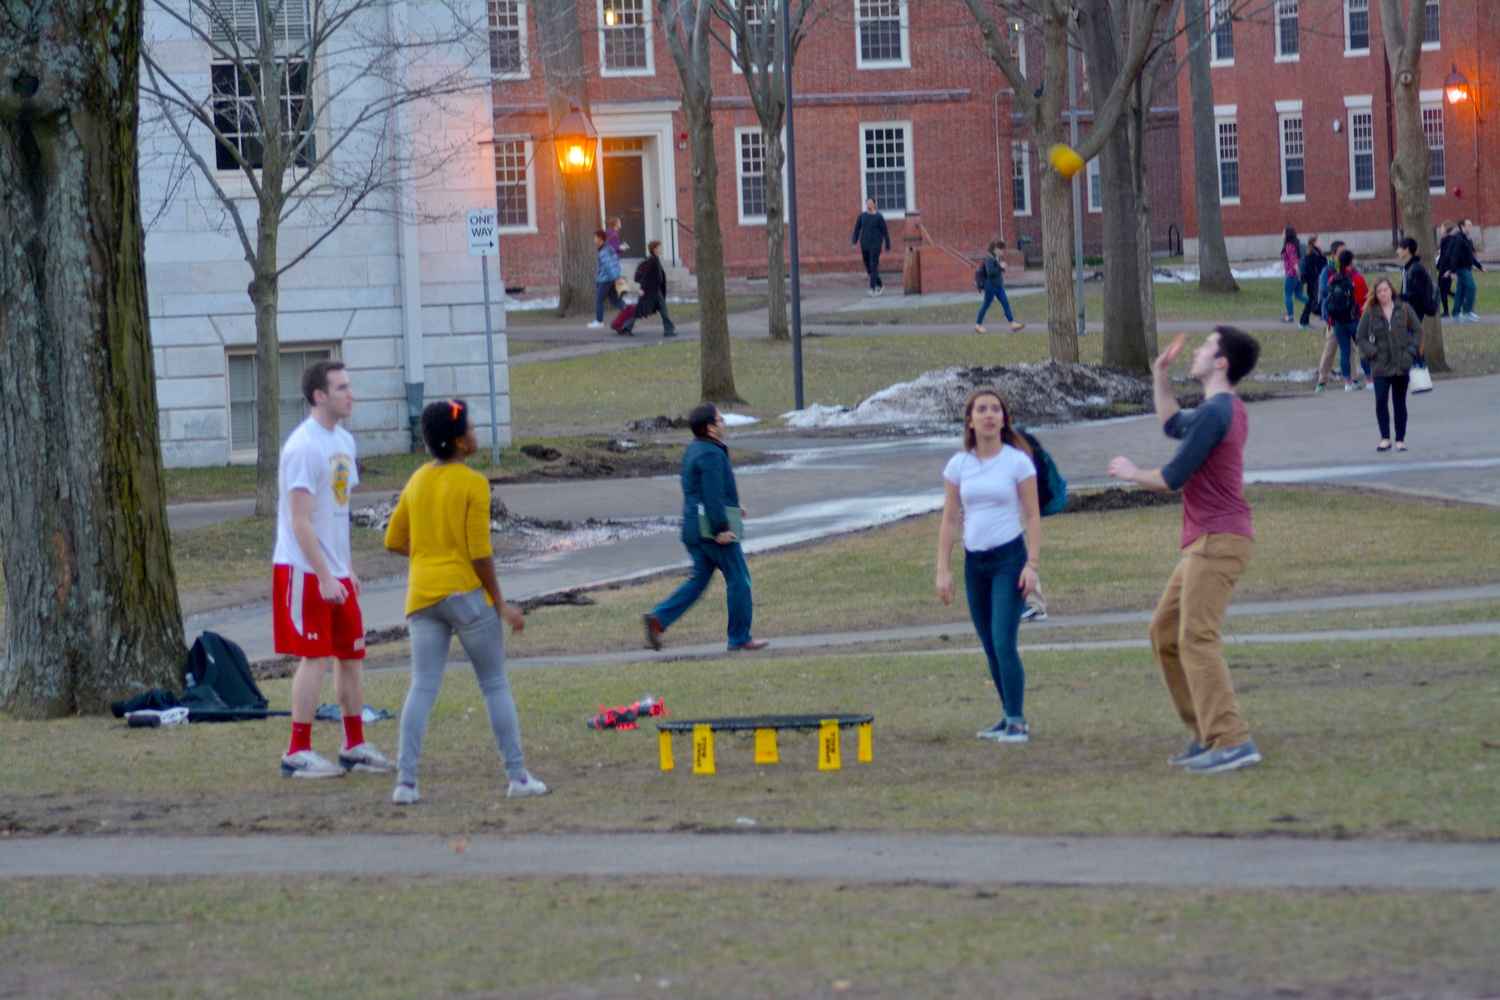 Students enjoy the unusually warm weather with a game of Spikeball in Harvard Yard Thursday afternoon.